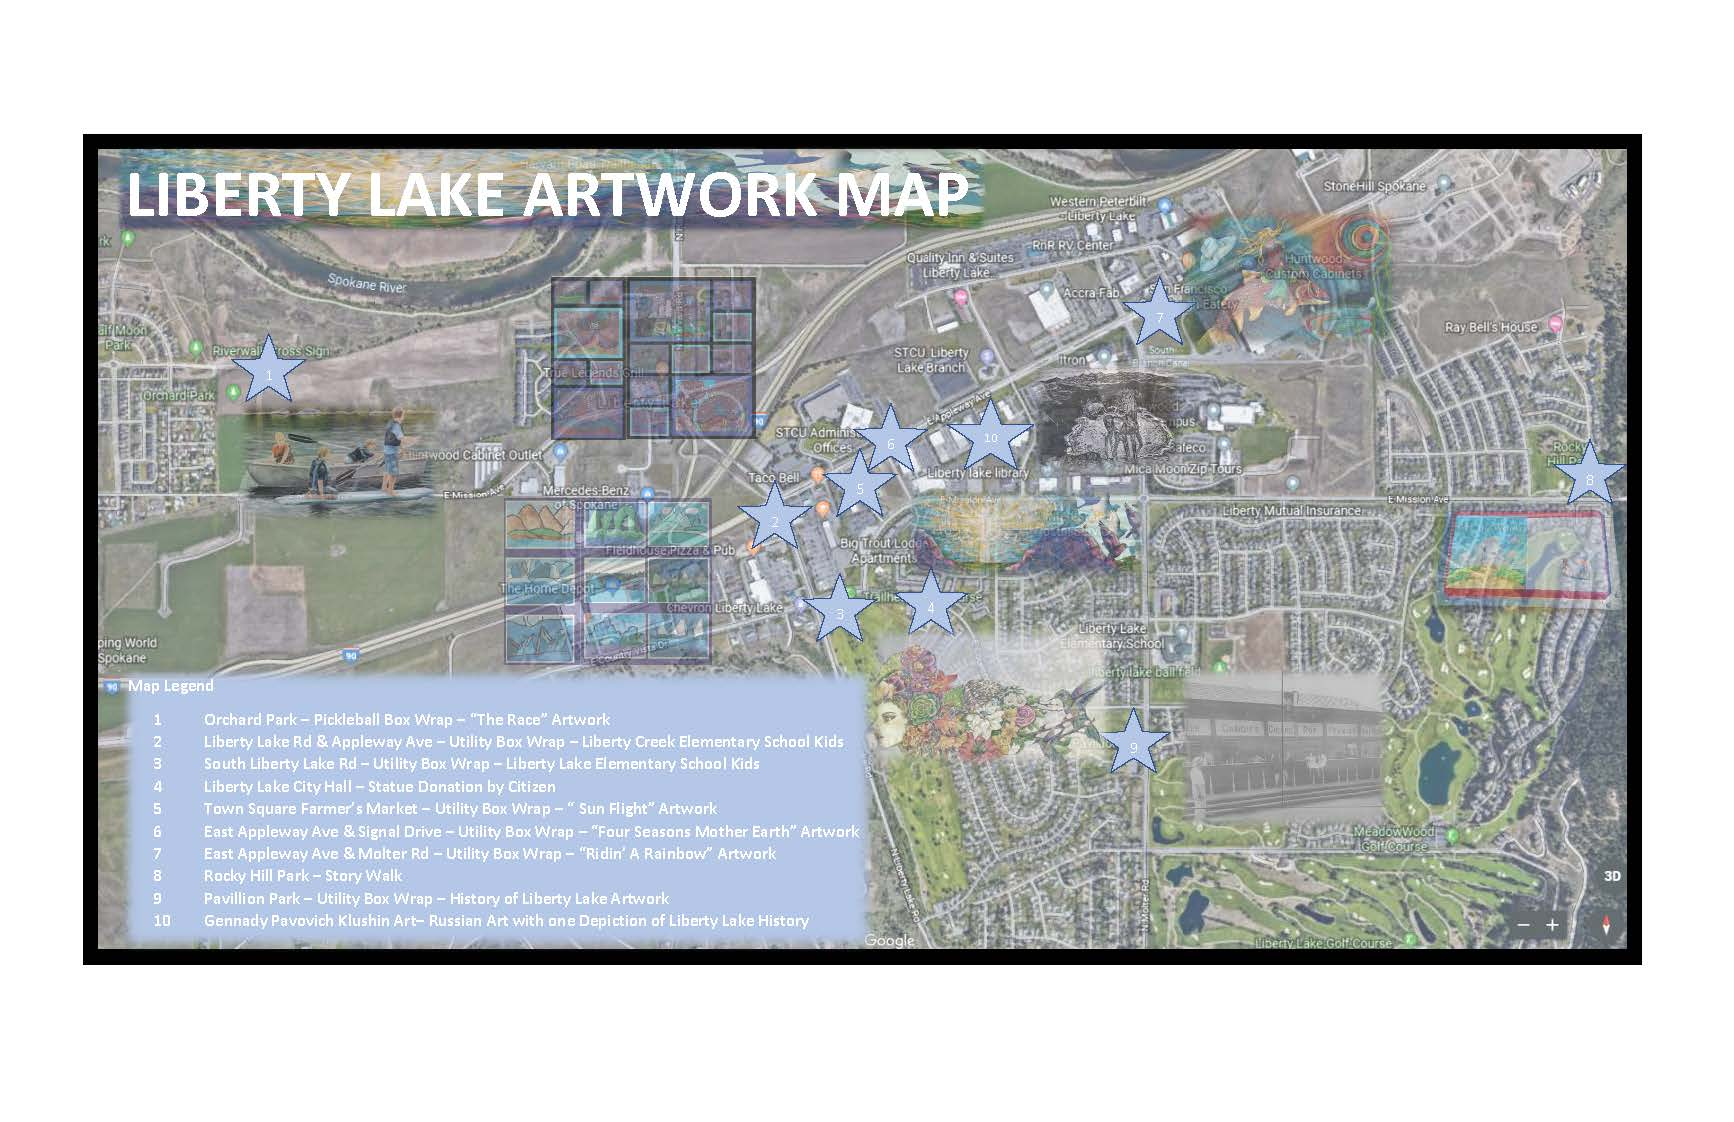 Liberty Lake Artwork Map